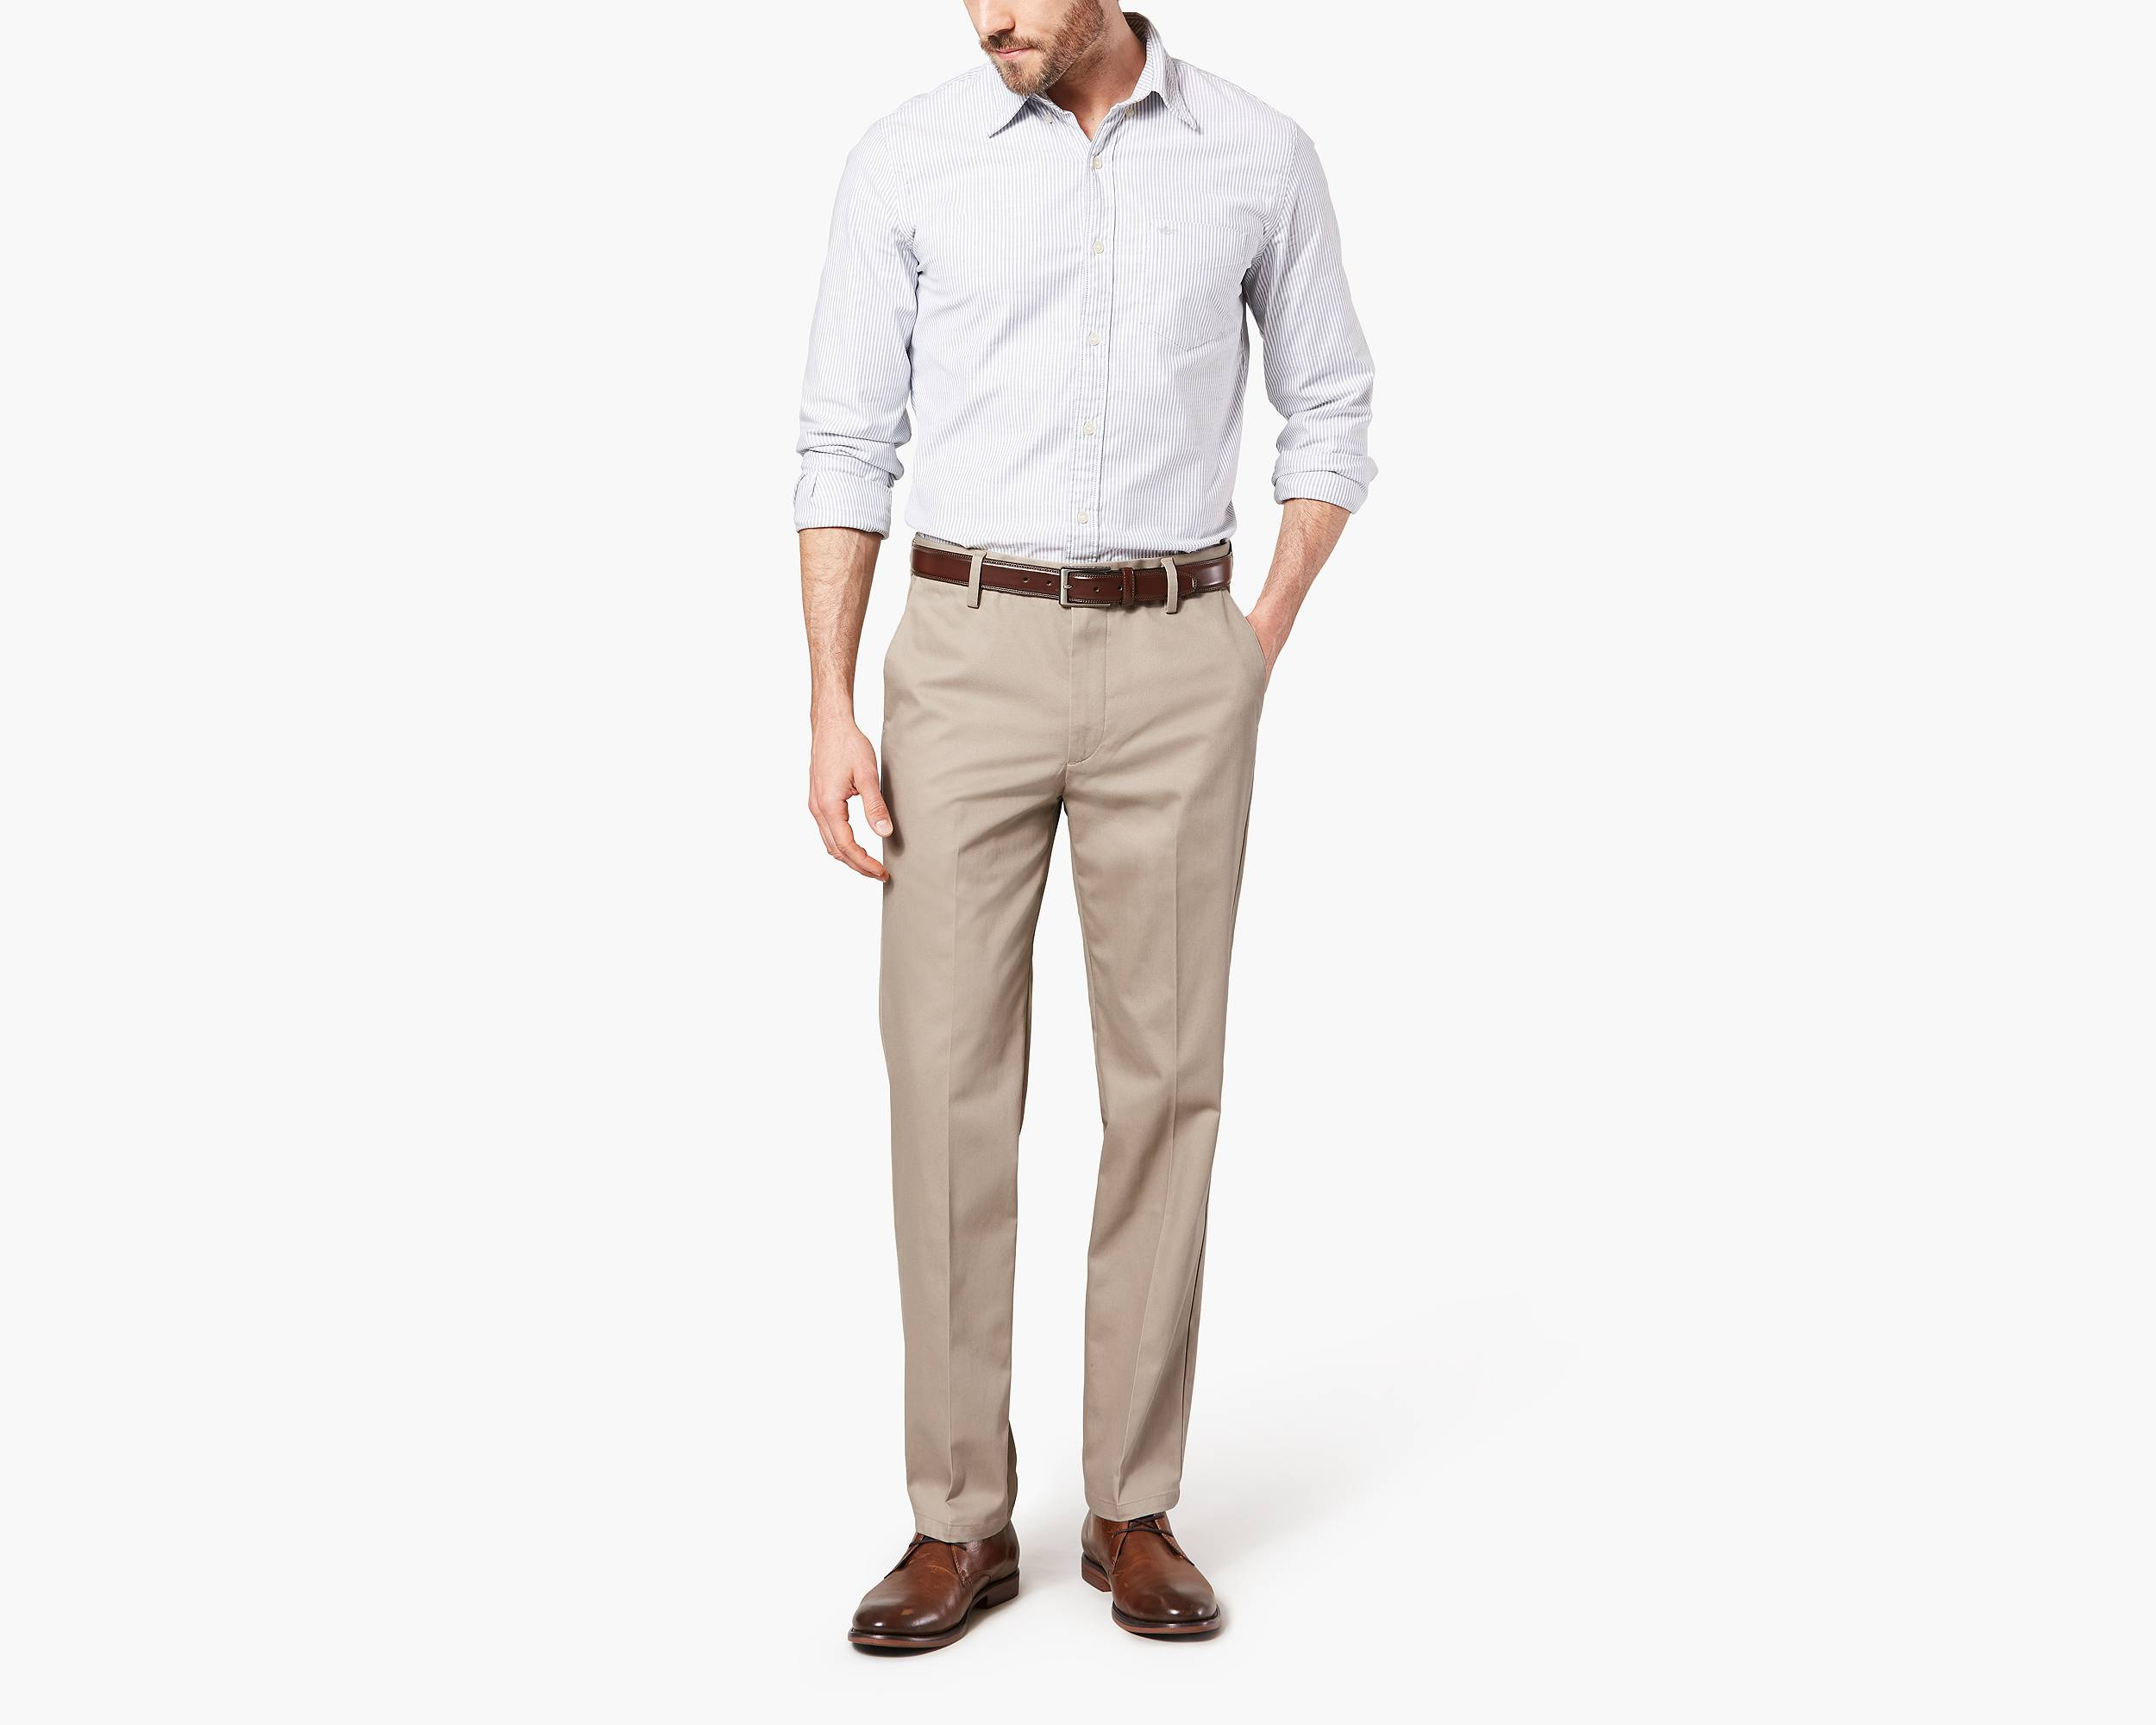 Slim Fit Signature Khaki - Shop Slim Fit Signature Khaki Pants ...